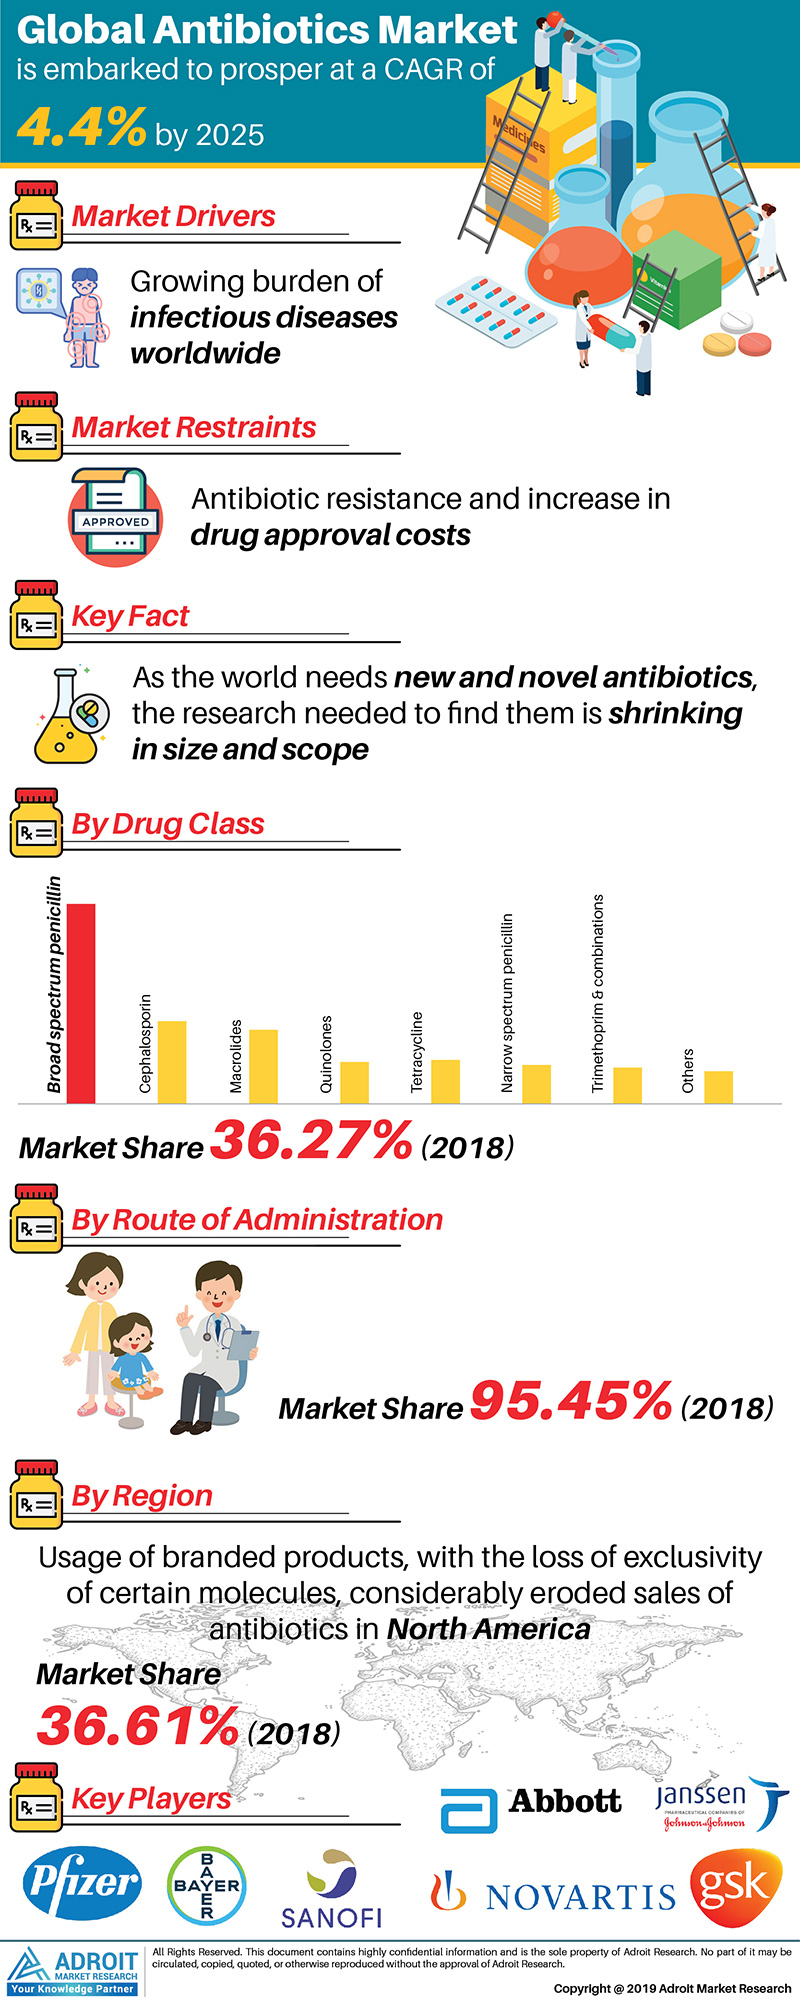 Global Antibiotics Market Size 2017 By Product, Procedure, Region and Forecast 2018 to 2025